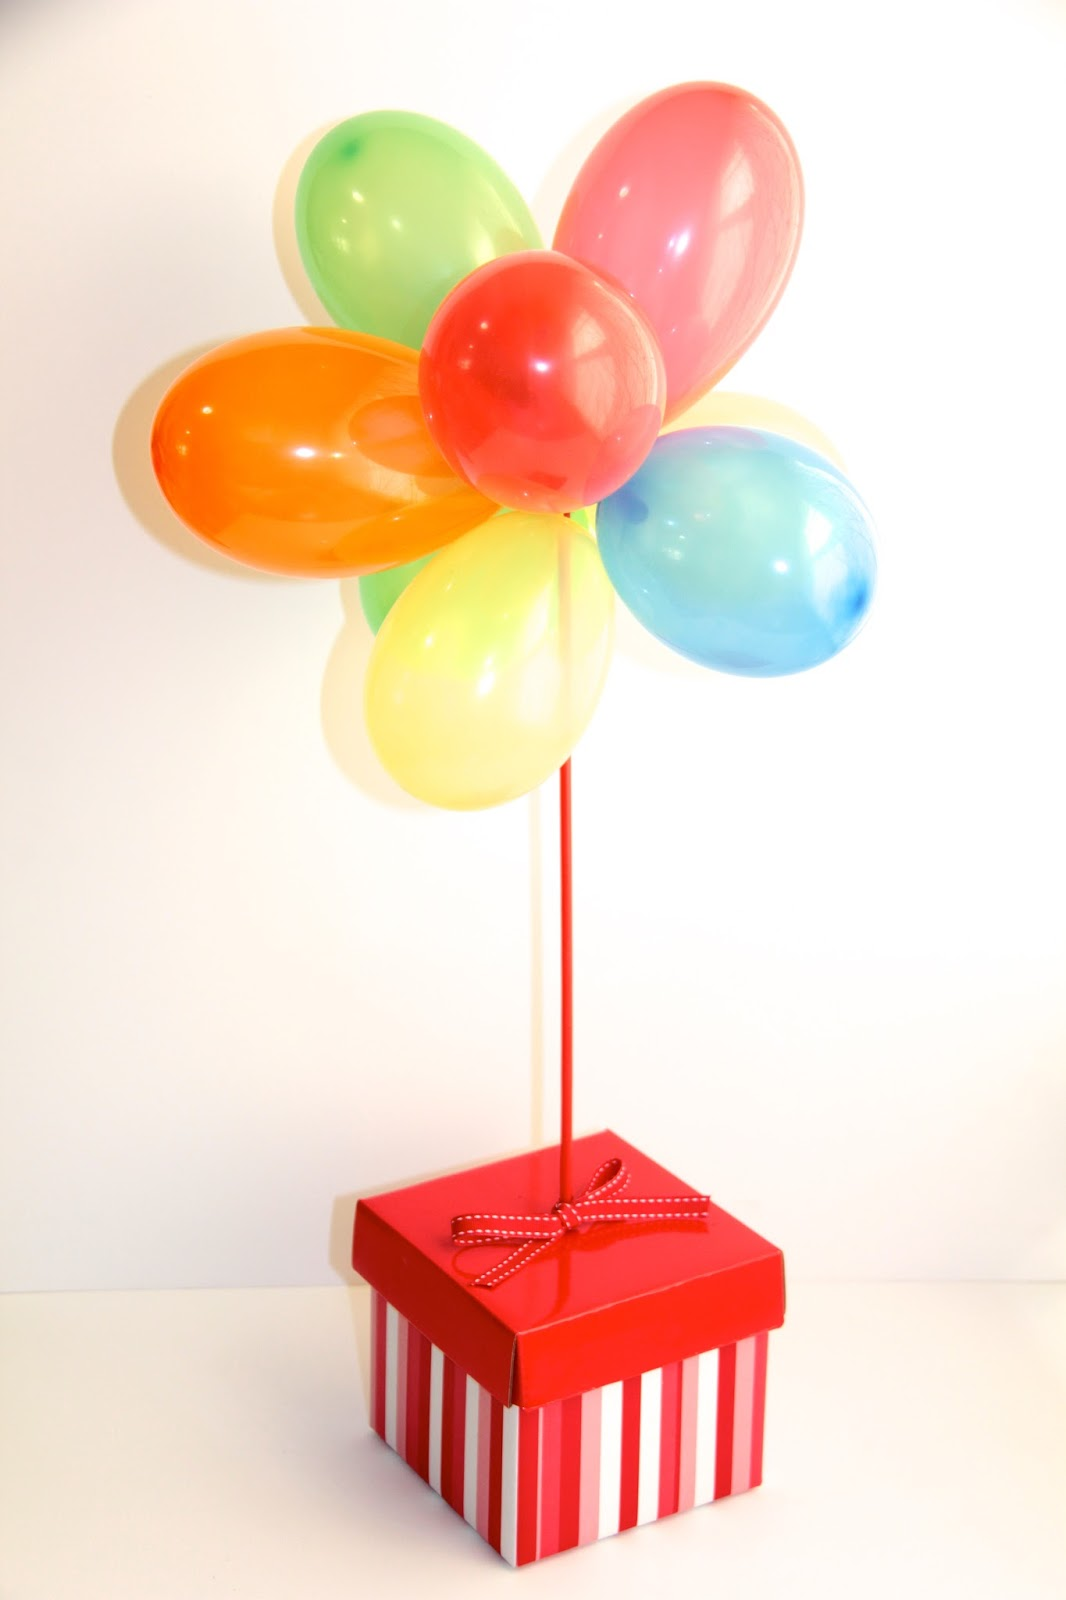 Circus party theme balloon centrepiece diy basil and chaise